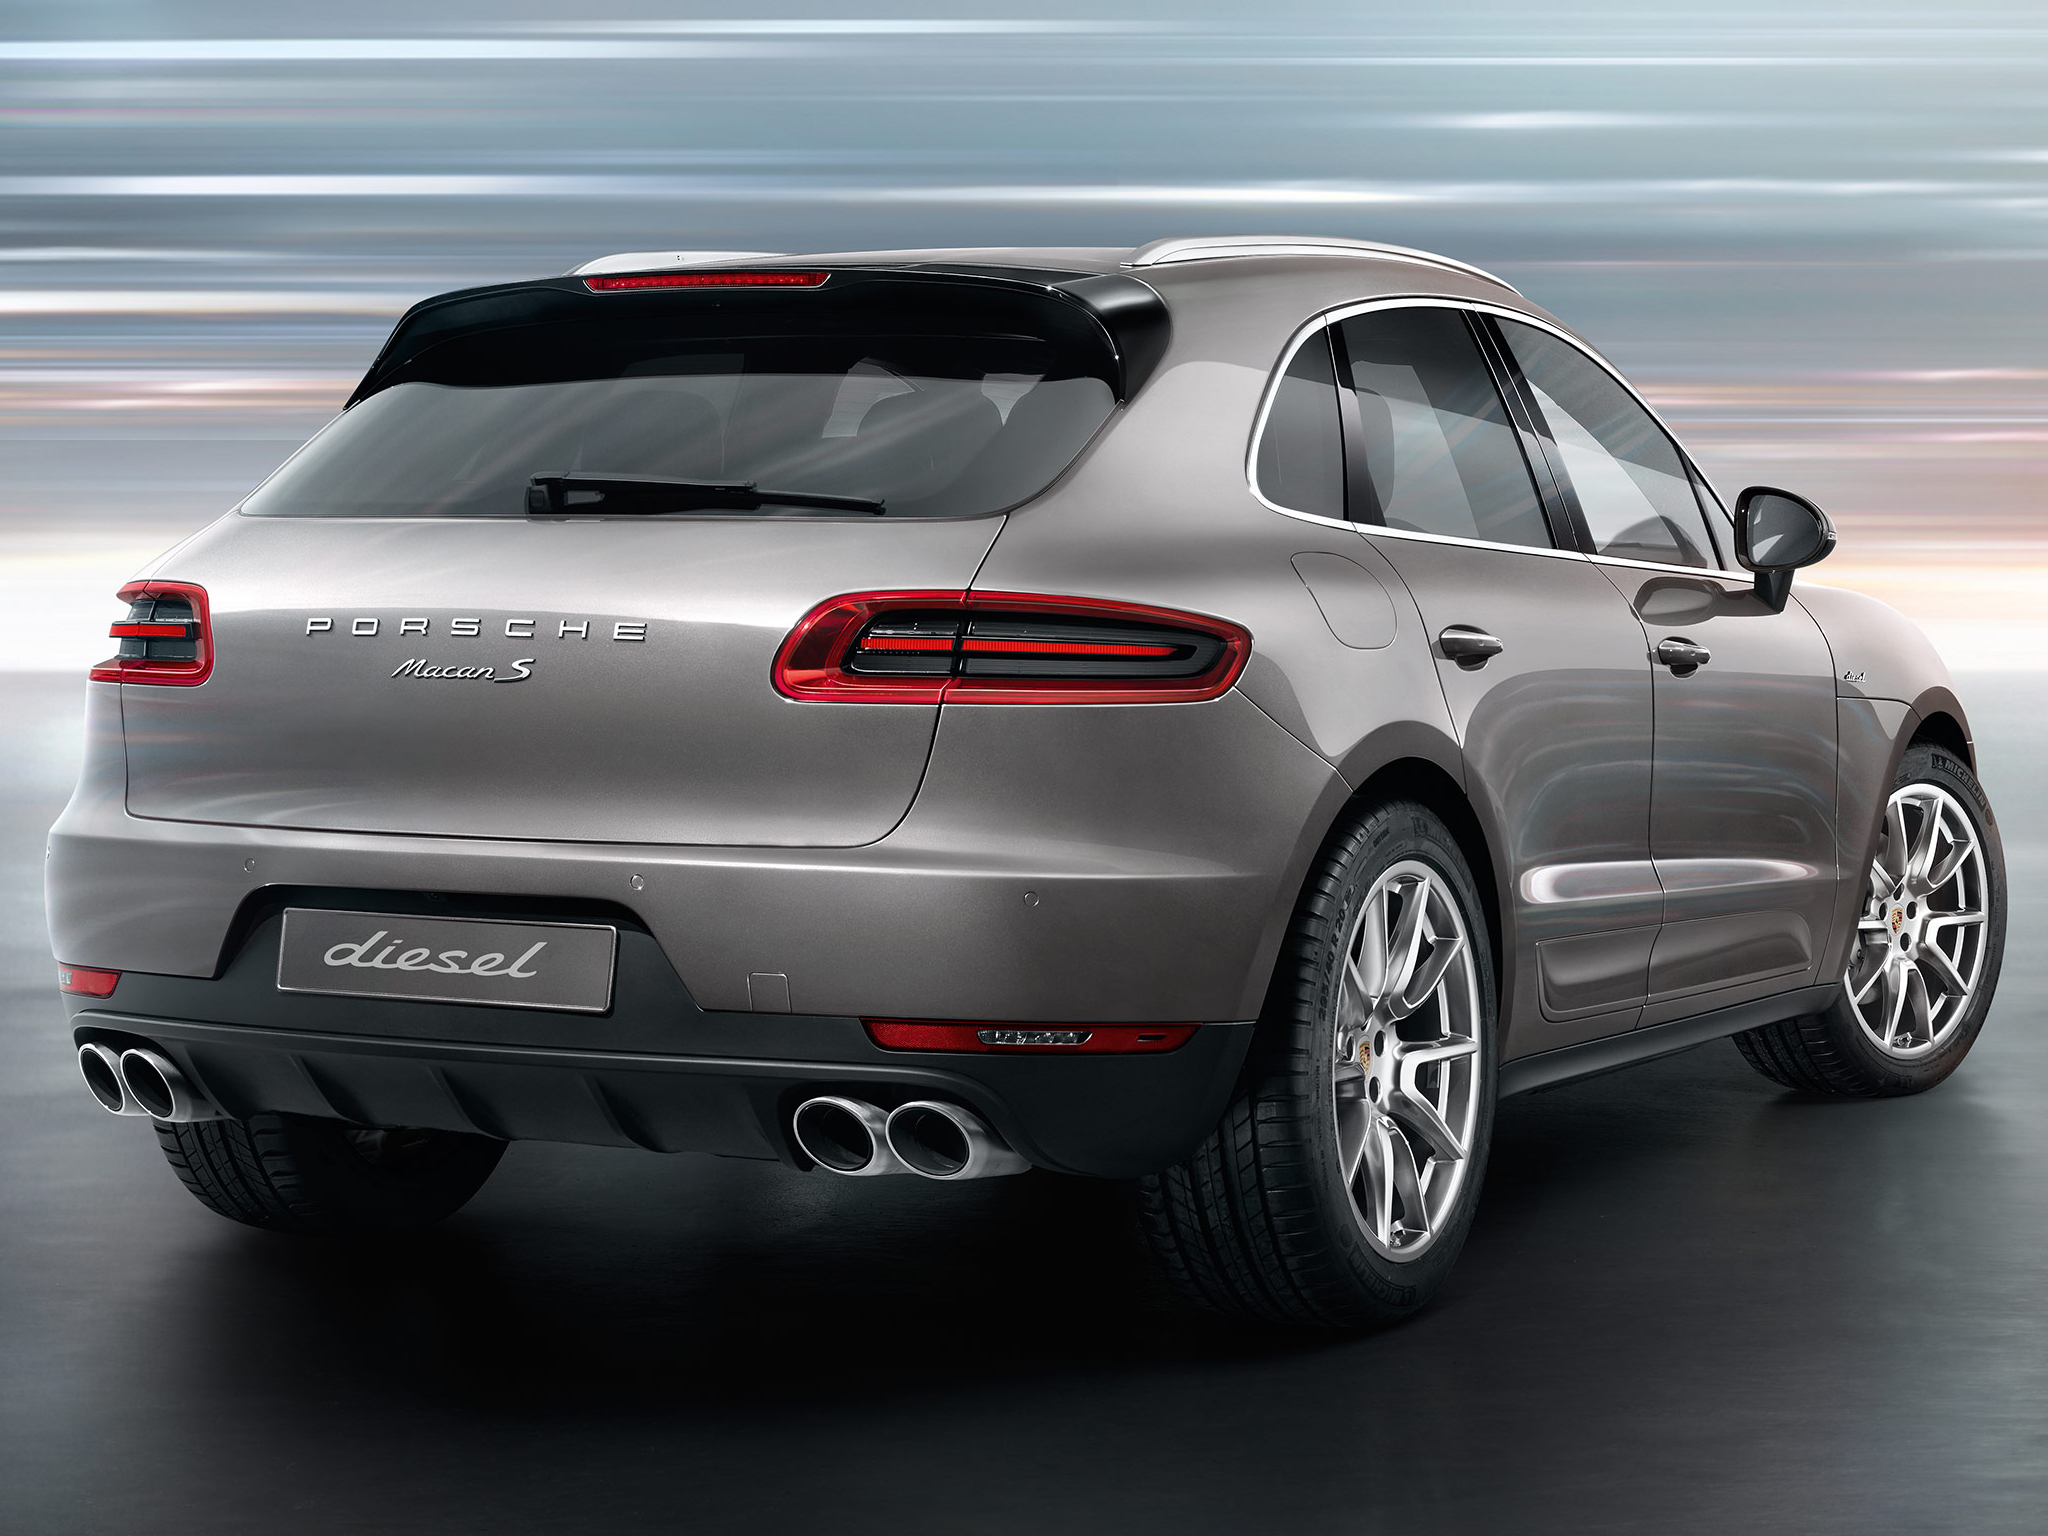 Hybrid Car Lineup Wallpaper 2018 Porsche Macan V6 Diesel Model Coming To America In 2015